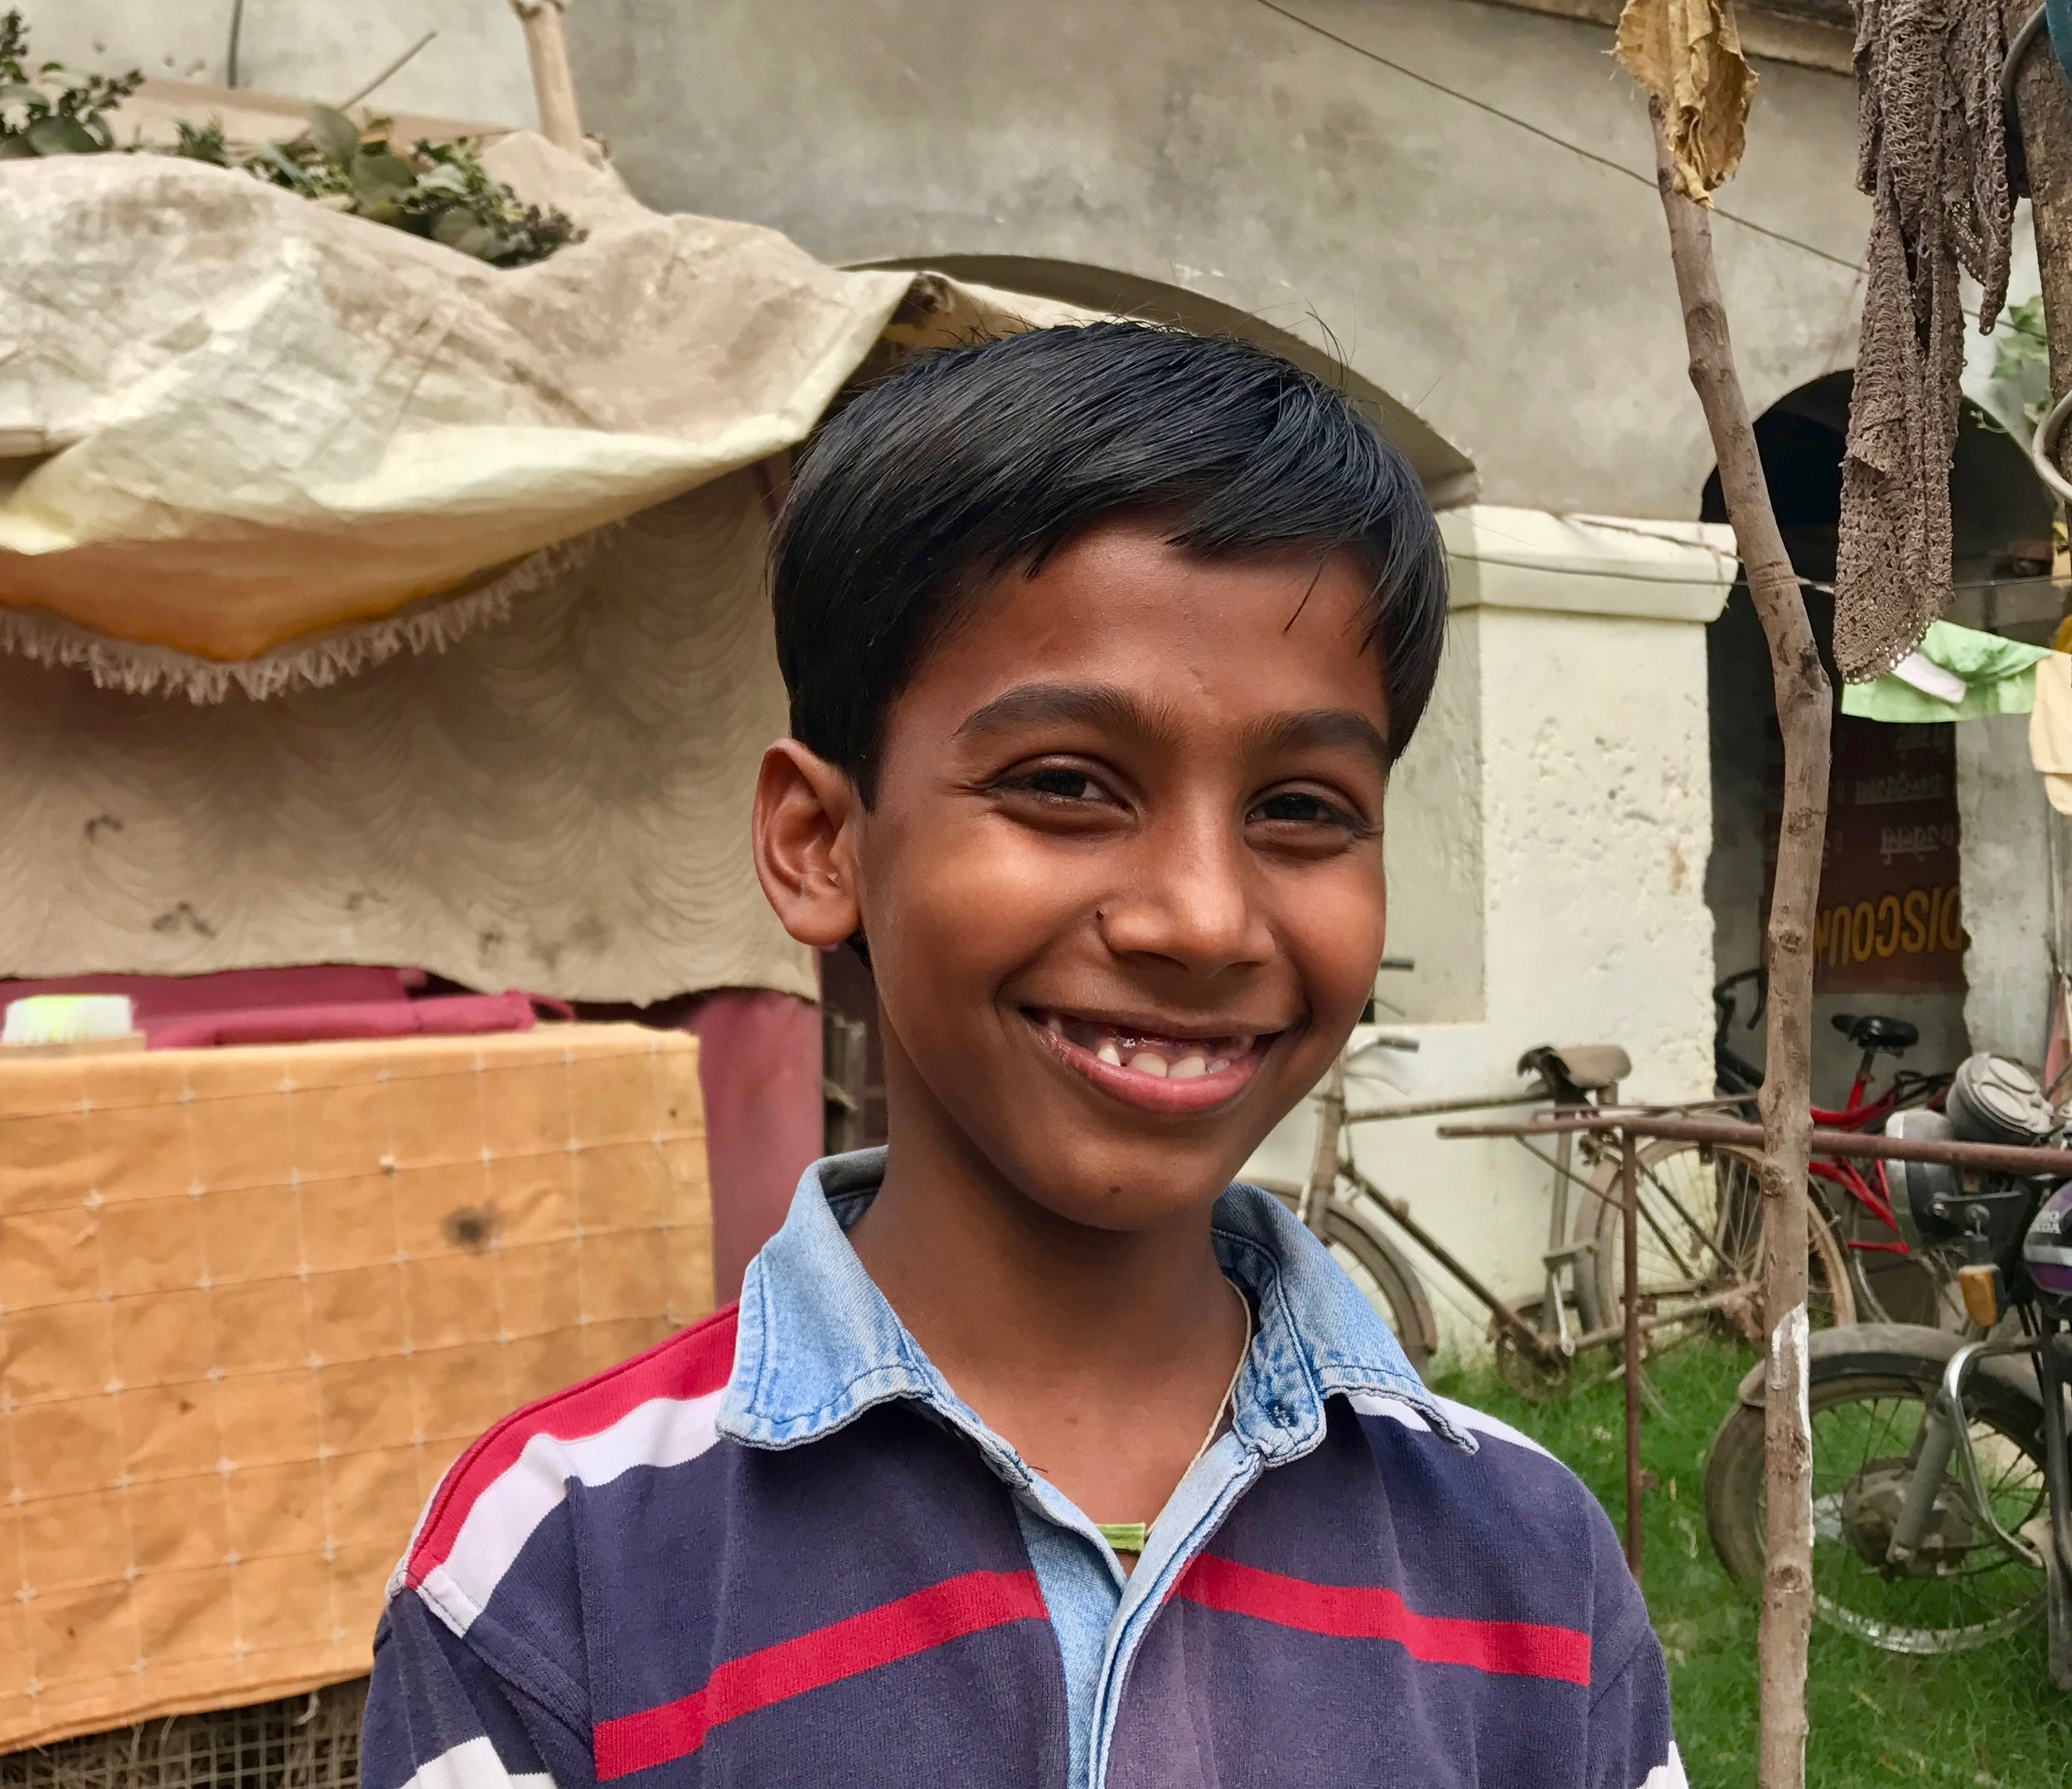 """""""My name is Akash. I was 5 years old when I joined school. I go to school everyday because I get to learn new things and when foreigners come from afar and teach me things, it's fun and intriguing. At Anjali, I learned to always study well and be good to others. I learned not to steal nor abuse anyone. I learned to solve problems and English too and many other things. I also love to type and draw on the computer. I can do anything for my education. My mom and my dad are both very hard-working. I get my courage from my parents. My mom always keeps me motivated and gives me hope. I don't want to do anything for myself. As soon as I become something, I won't let my parents to continue to live and work in these conditions. I want to keep my books safe and close to me. I can never give up my studies. In 10 years, I will be an engineer. I want to design and create self-driving cars and robots."""""""